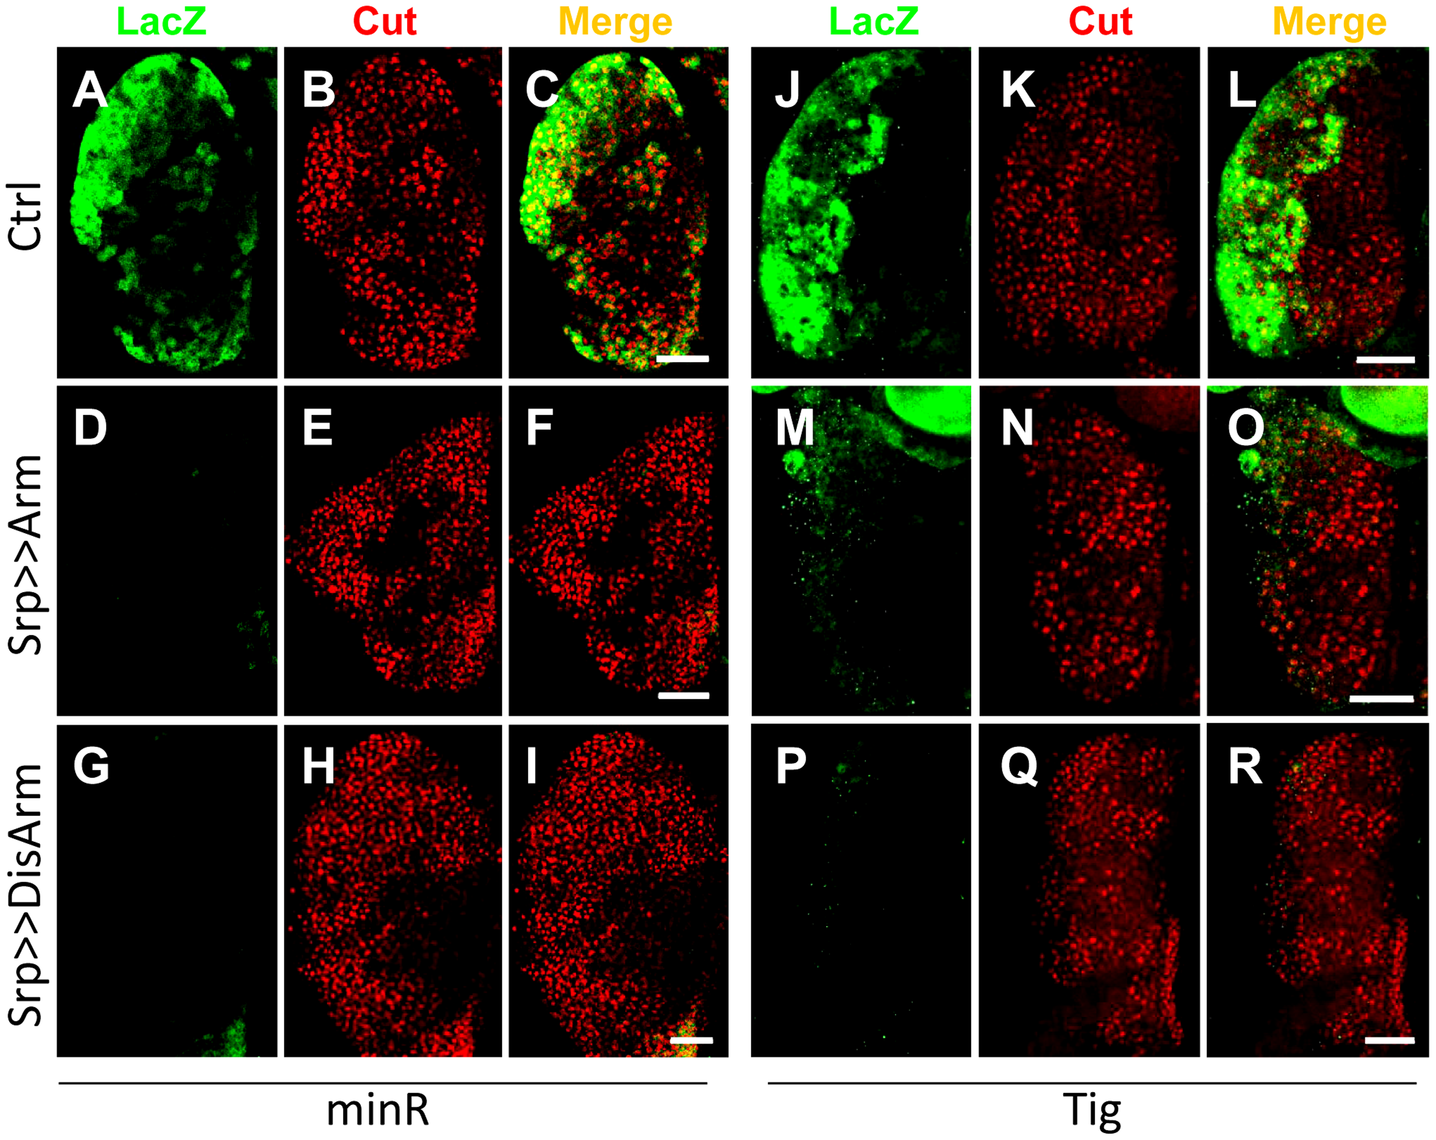 The <i>Tig</i> and minR reporters are repressed by Wnt signaling in the larval LG.